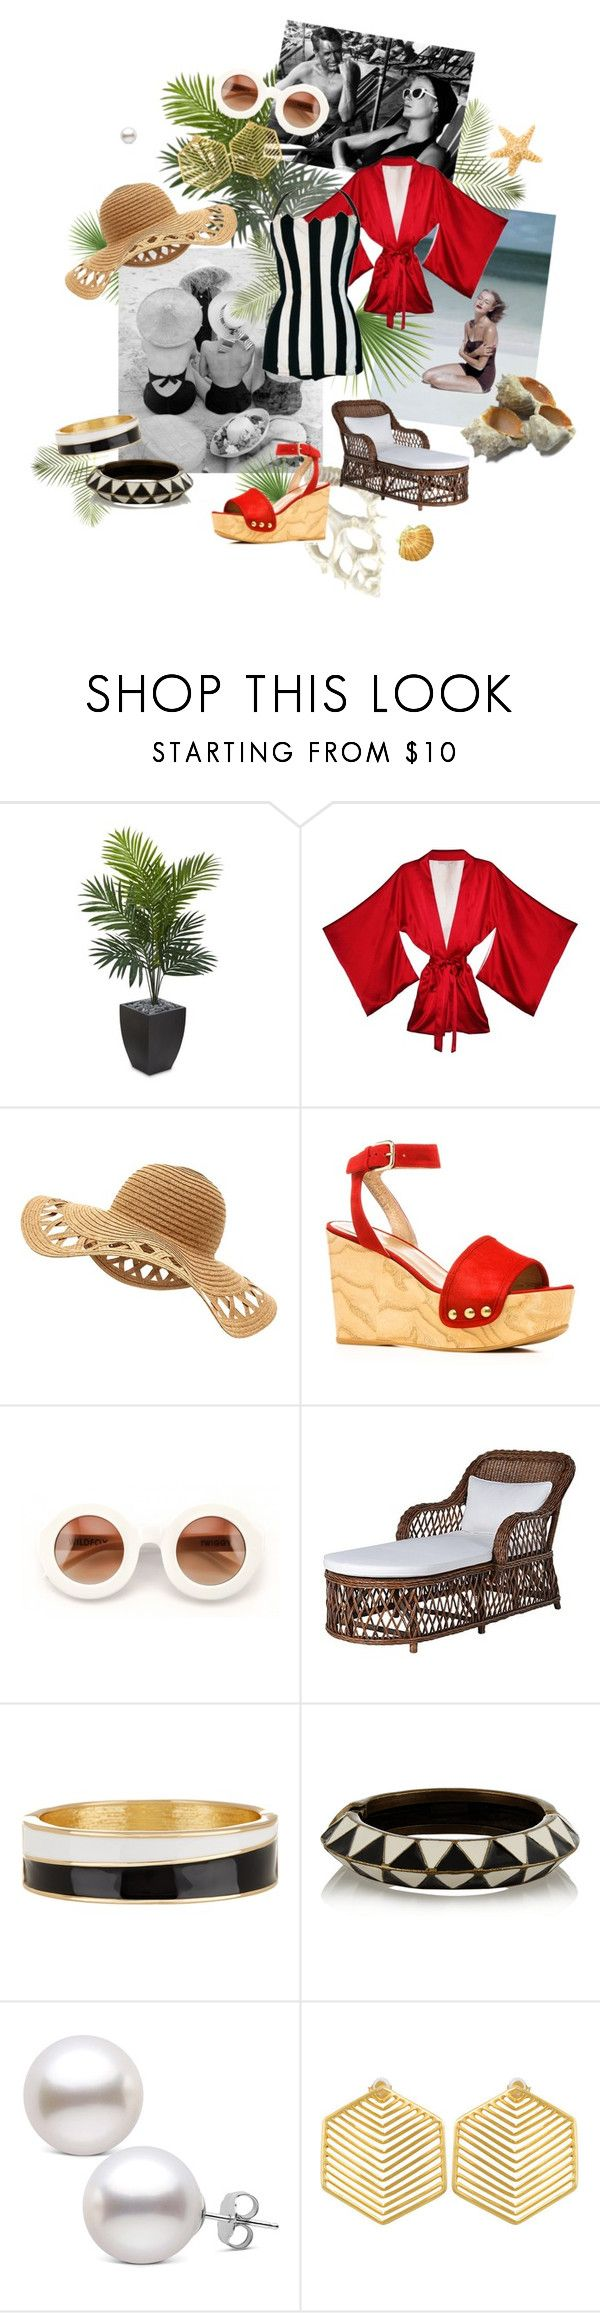 """Glamour by the Sea"" by blind-carbon-copy ❤ liked on Polyvore featuring Nearly Natural, Fleur du Mal, Stuart Weitzman, Wildfox, Retrò, Spring Street, Isabel Marant and Kasturjewels"